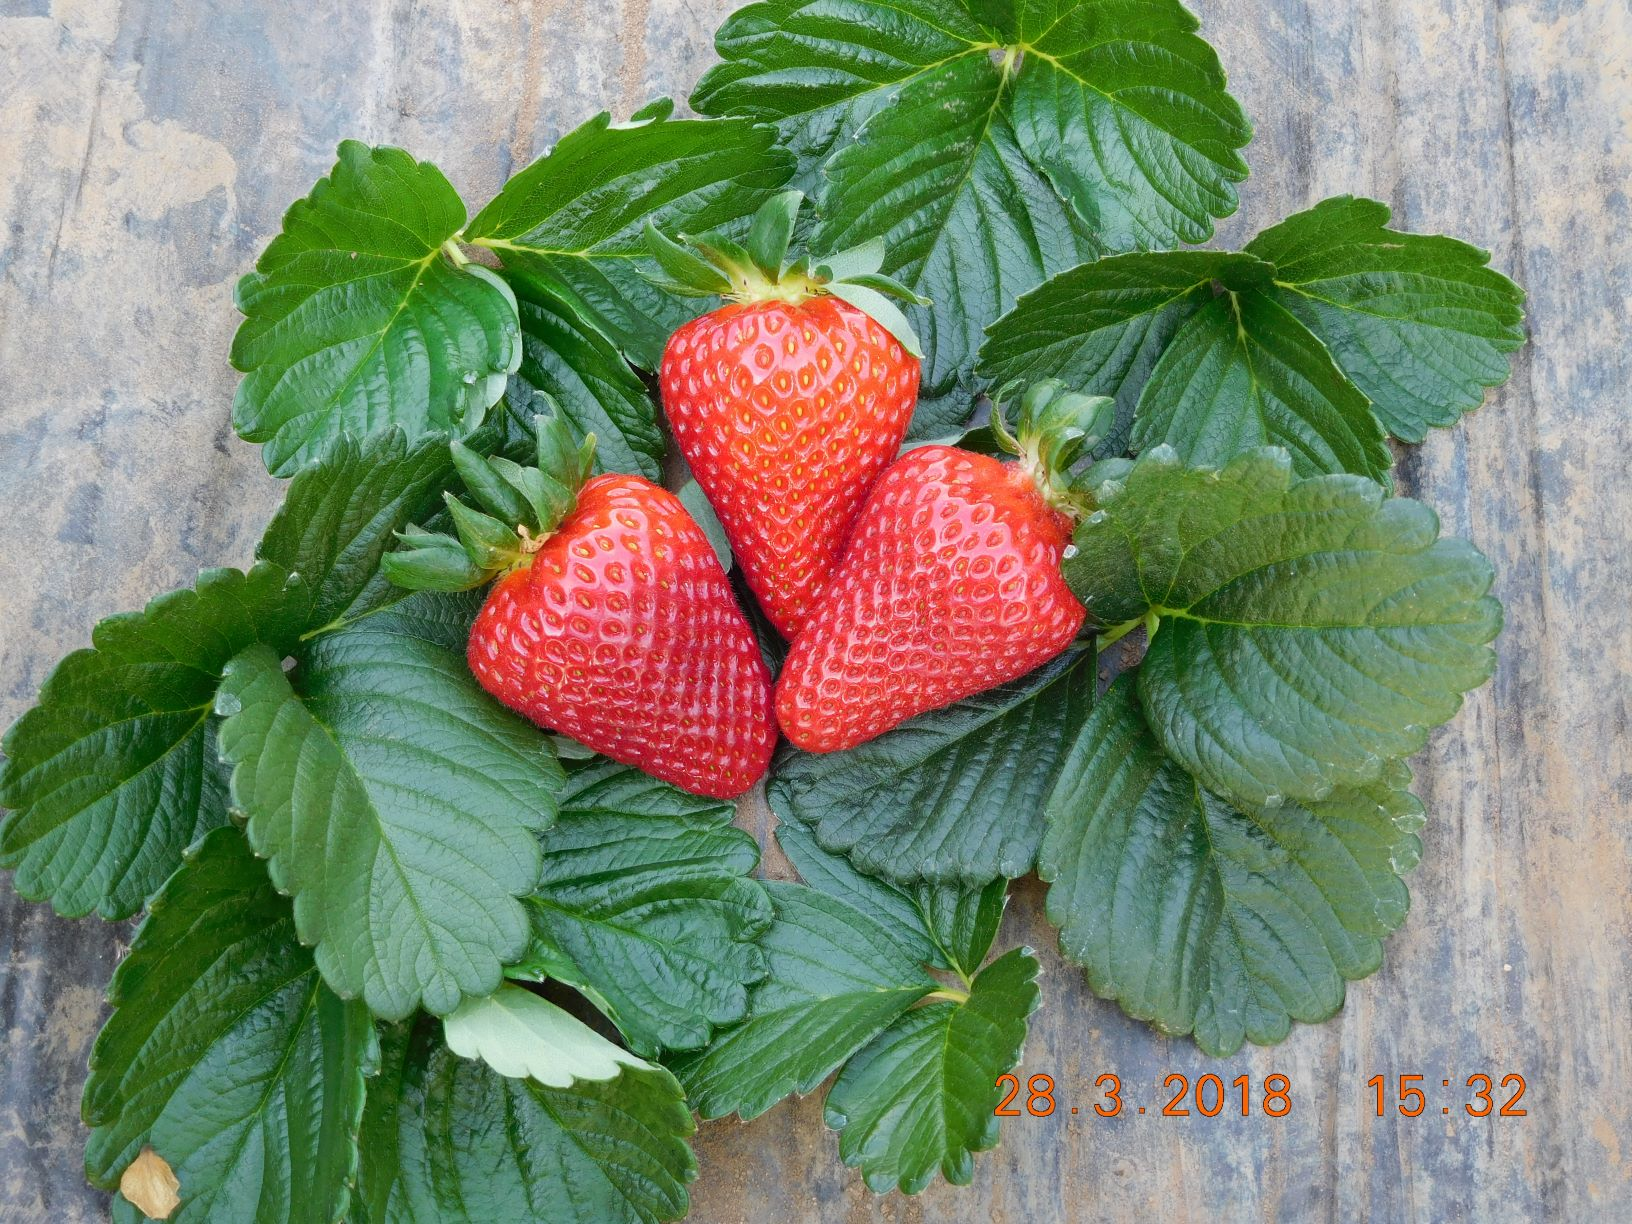 CIV focuses on innovation, presenting 5 new strawberry varieties destined for international markets at the Global Berry Congress 2019 in Rotterdam